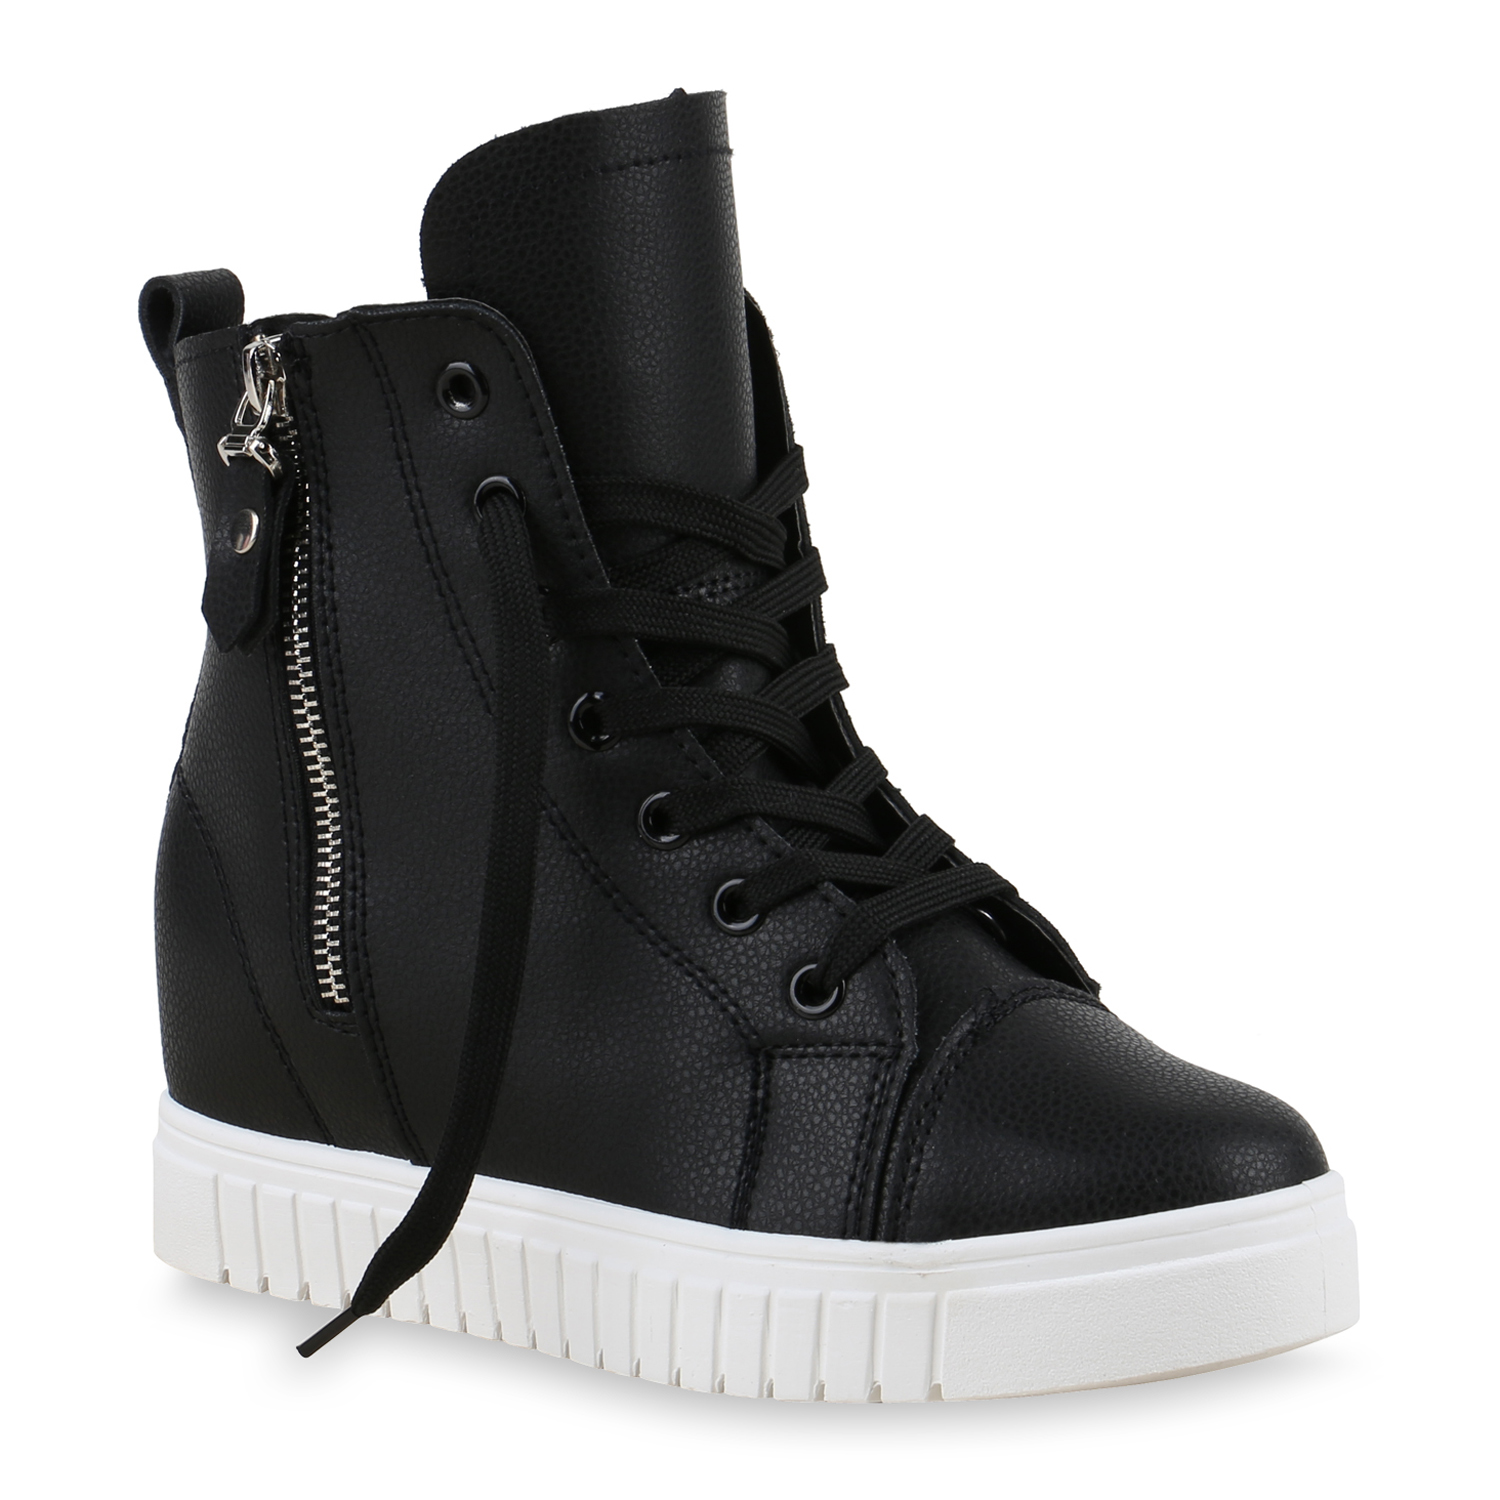 damen sneakers keilabsatz sneaker wedges high top zipper. Black Bedroom Furniture Sets. Home Design Ideas